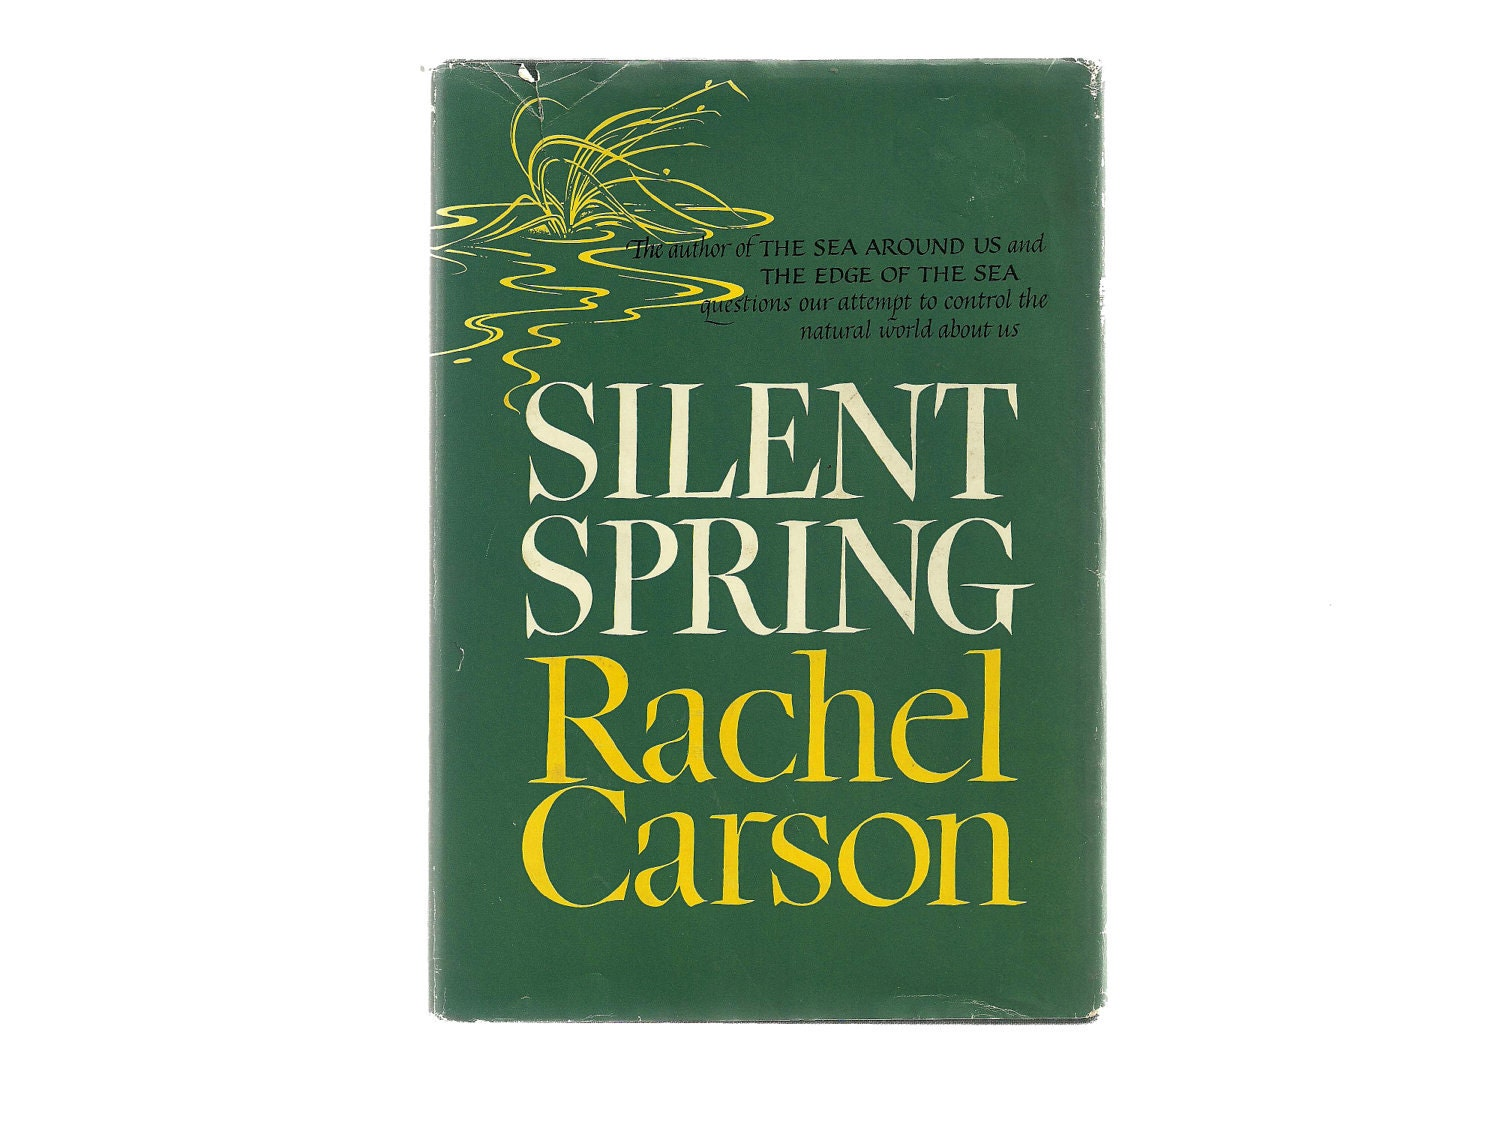 Essays, College Application Essays - Silent spring essay Silent Spring ...